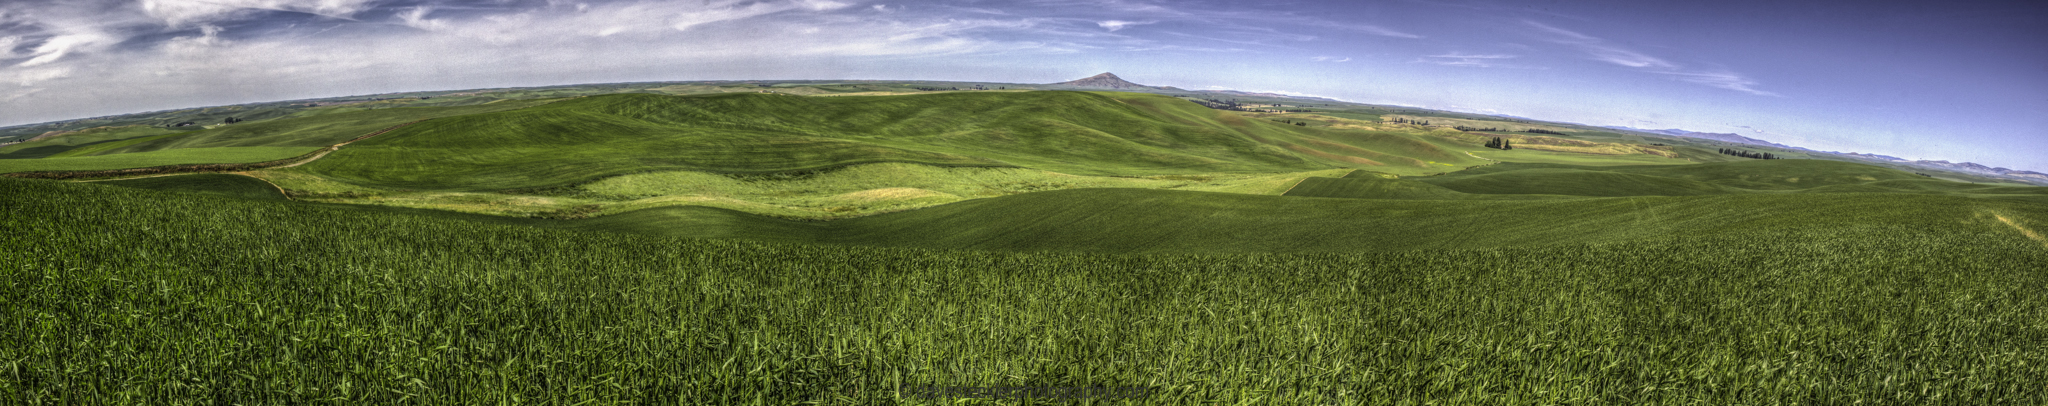 Palouse Panorama with Steptoe Butte in the distance.